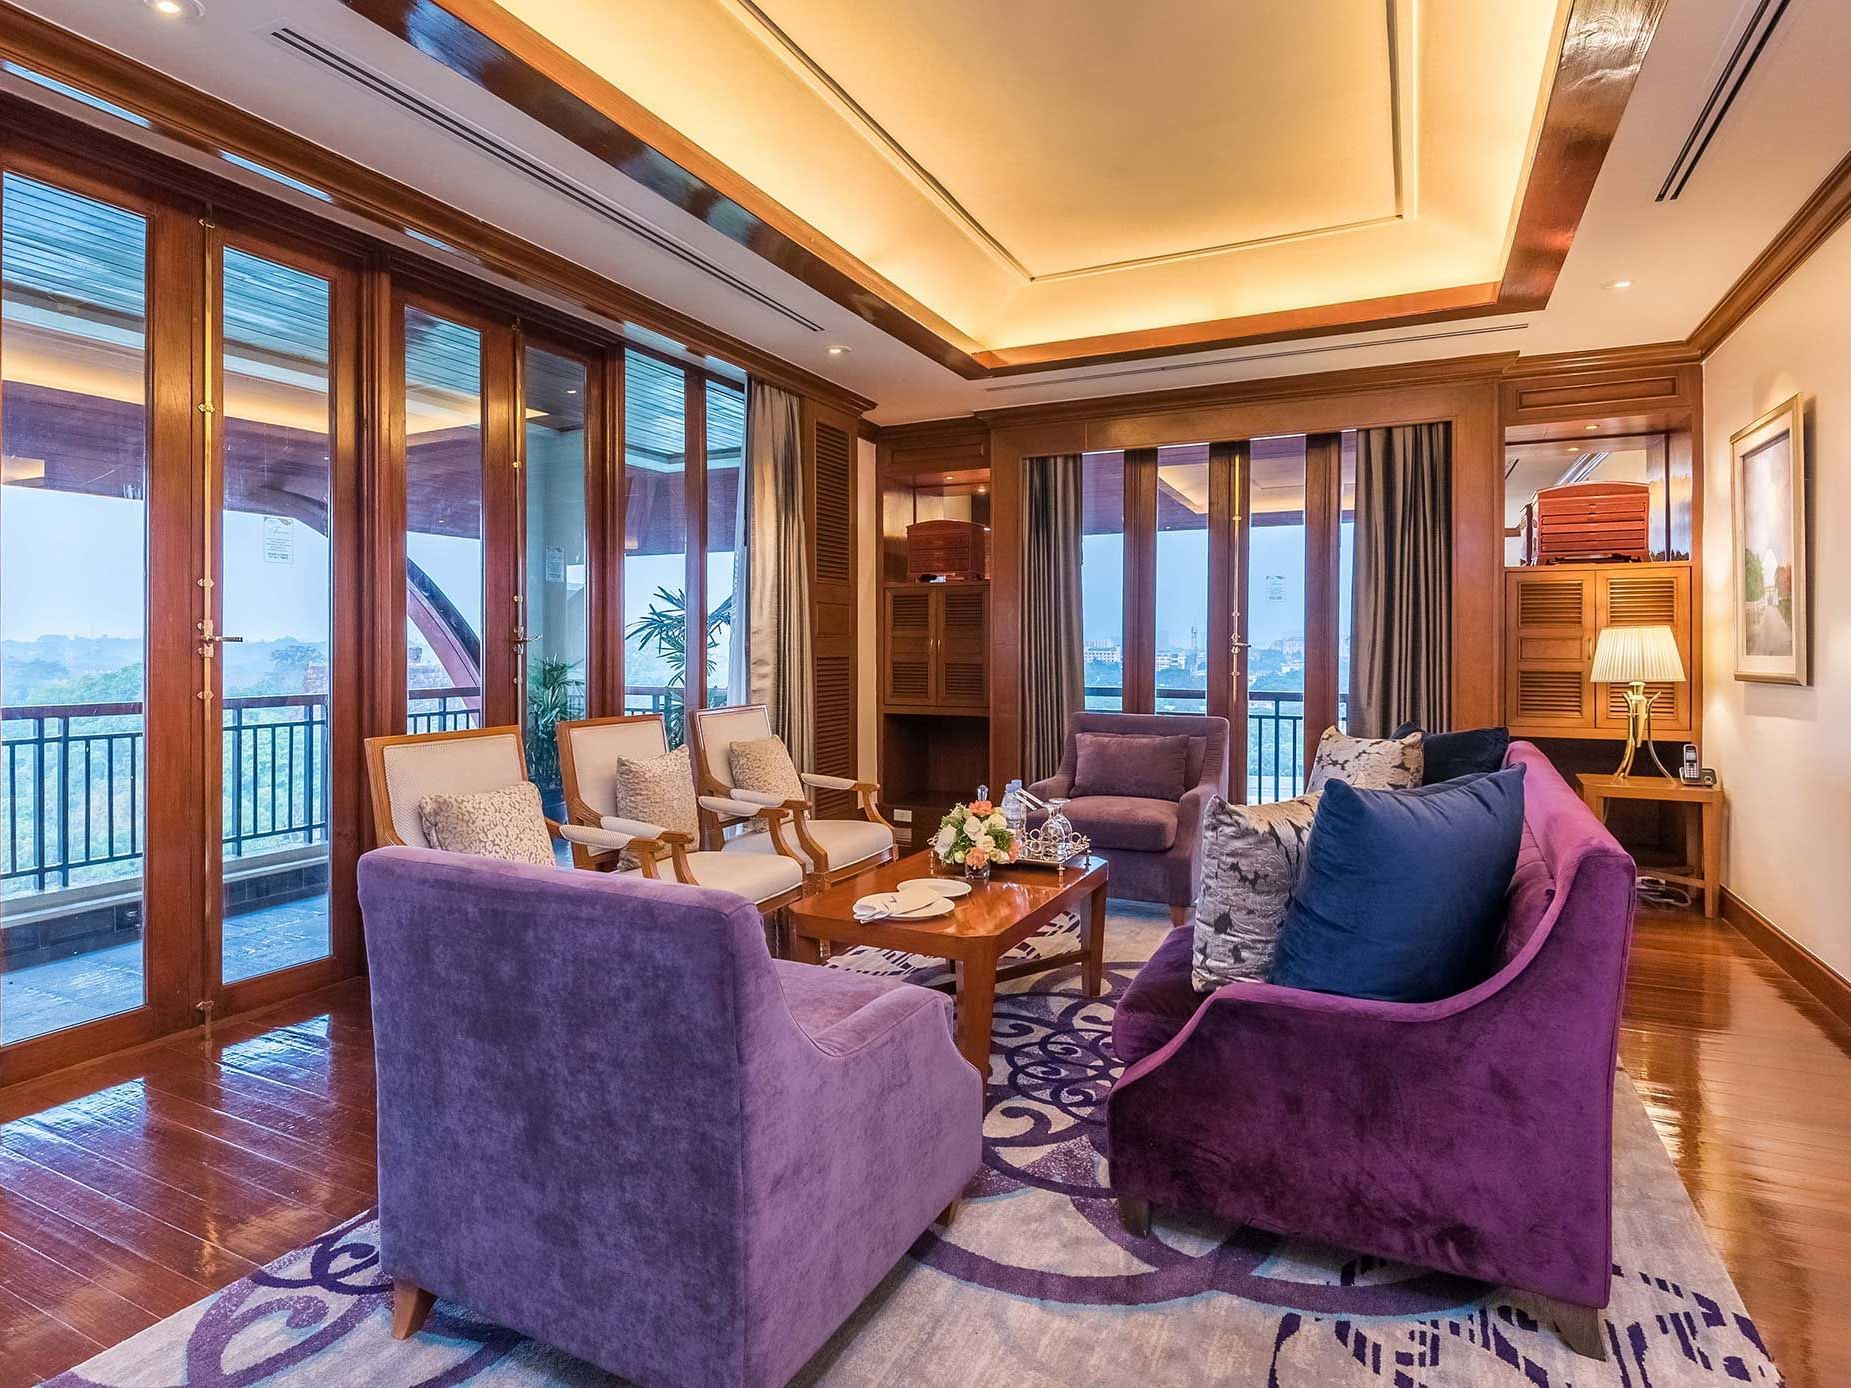 View of living room in Royal Suite at Chatrium Hotel Royal Lake